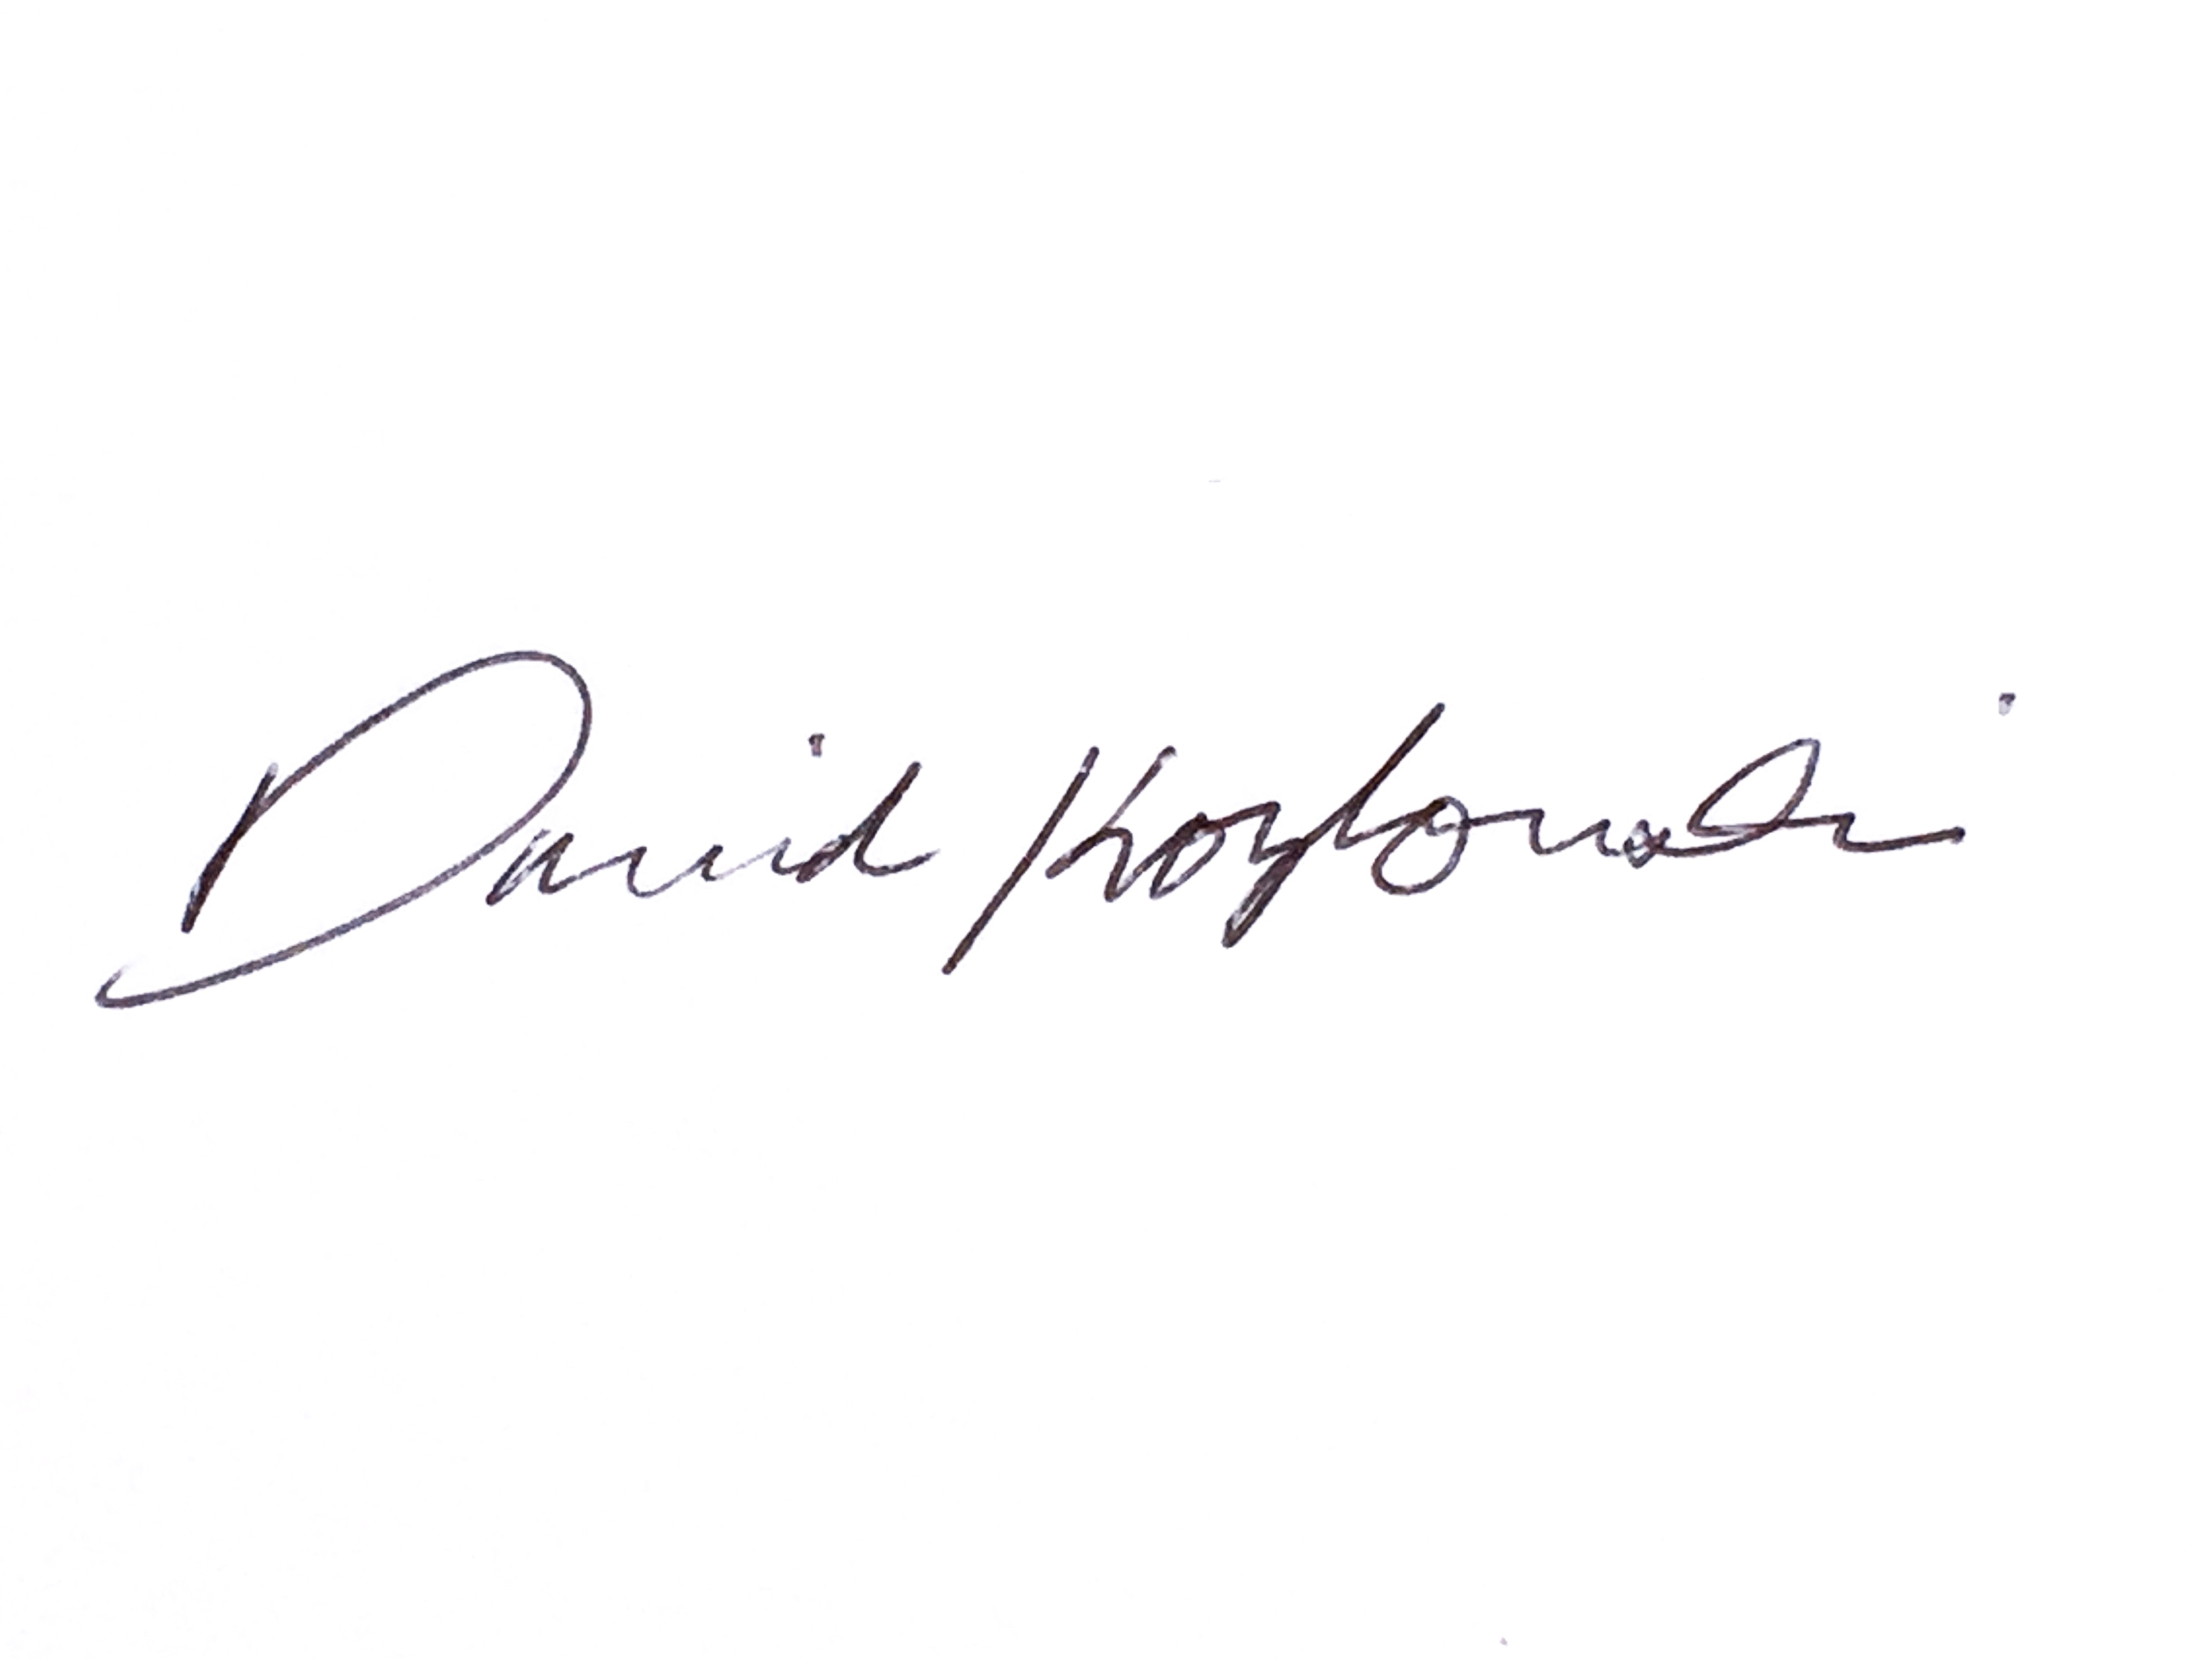 David Kozlowski's Signature